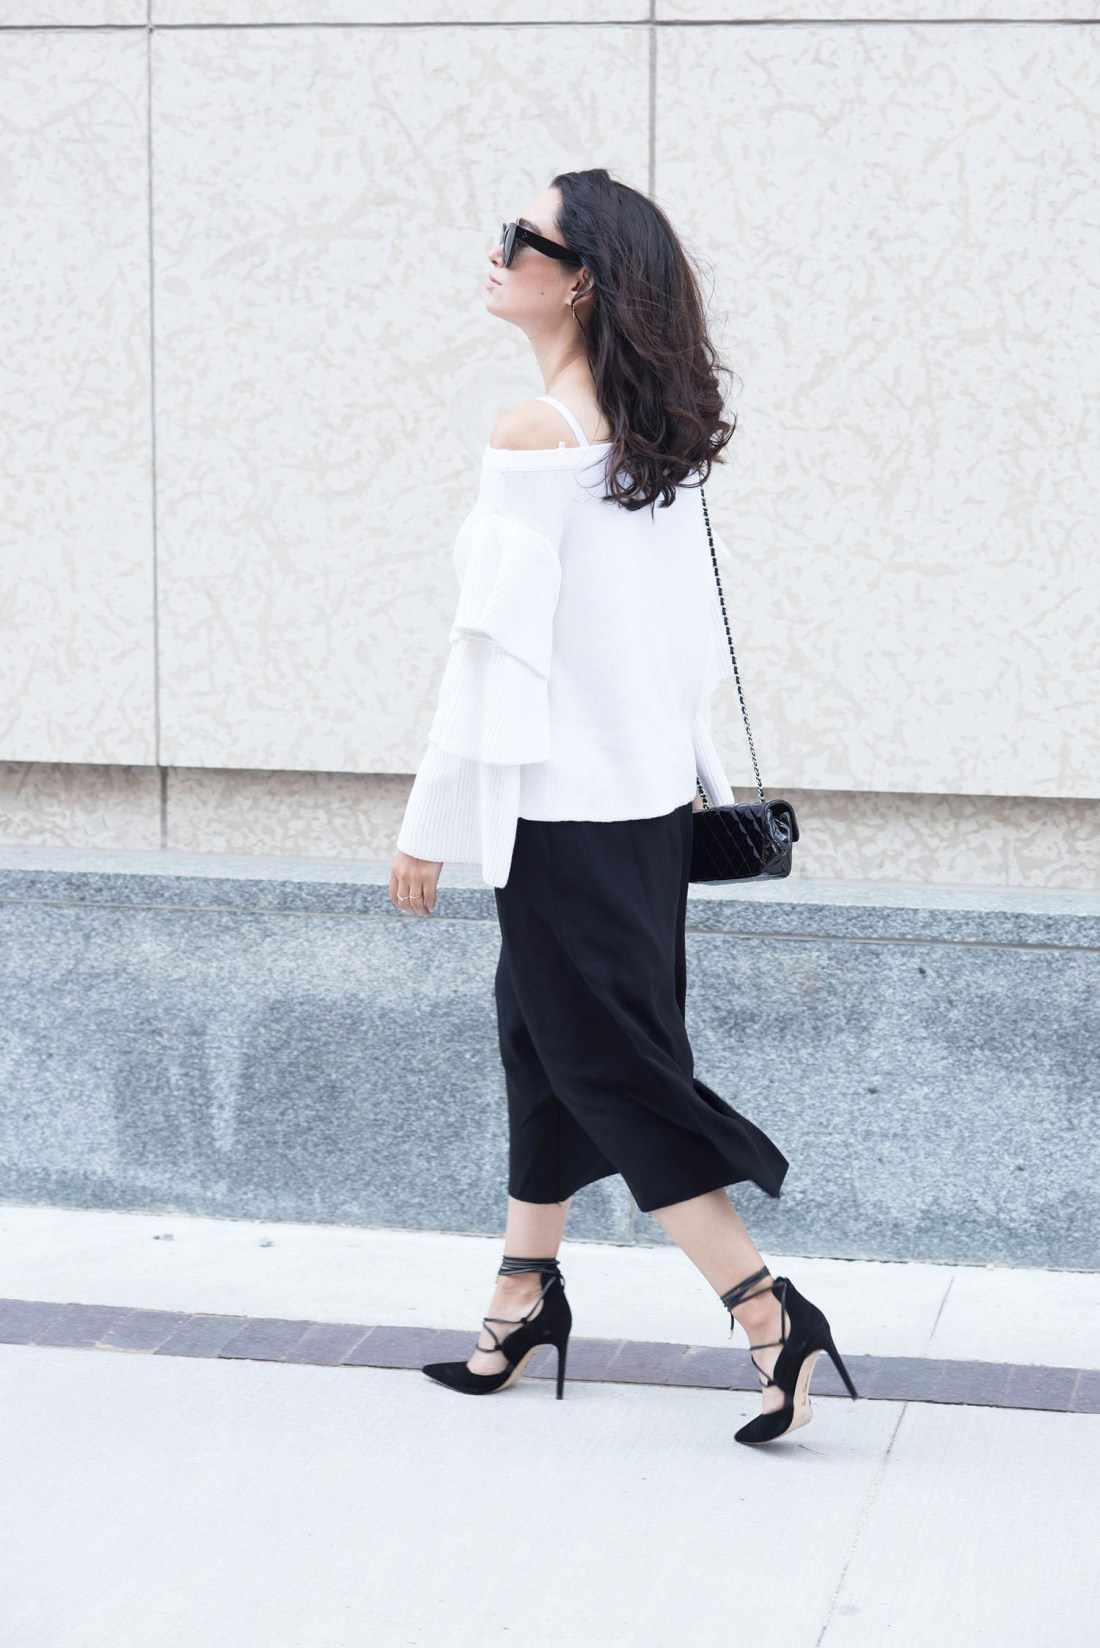 Fashion blogger Cee Fardoe of Coco & Vera walks in downtown Winnipeg wearing a white endless rose sweater and Same Edelman lace-up heels